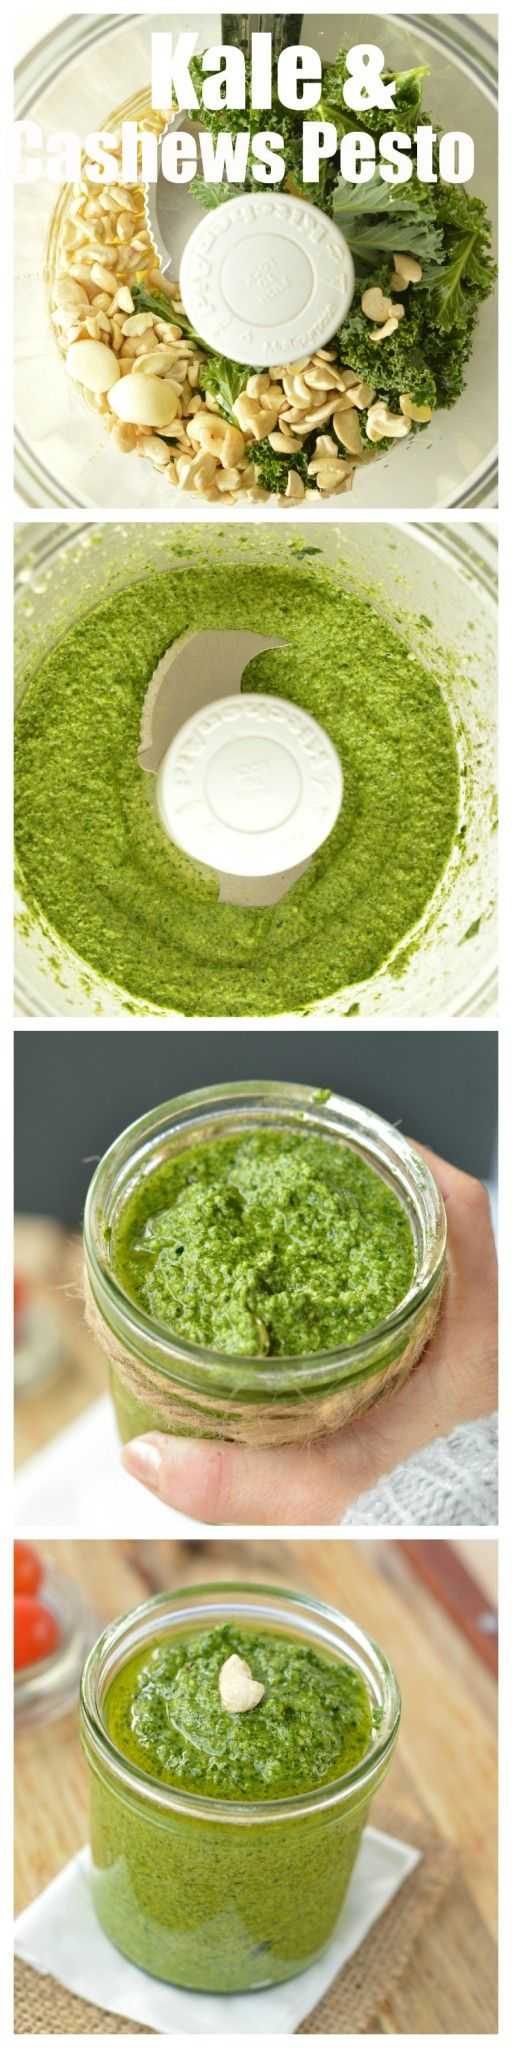 vegan cashew pesto creamy pesto There's no basil in this recipe. A good way to use kale, and cashew is always on hand.